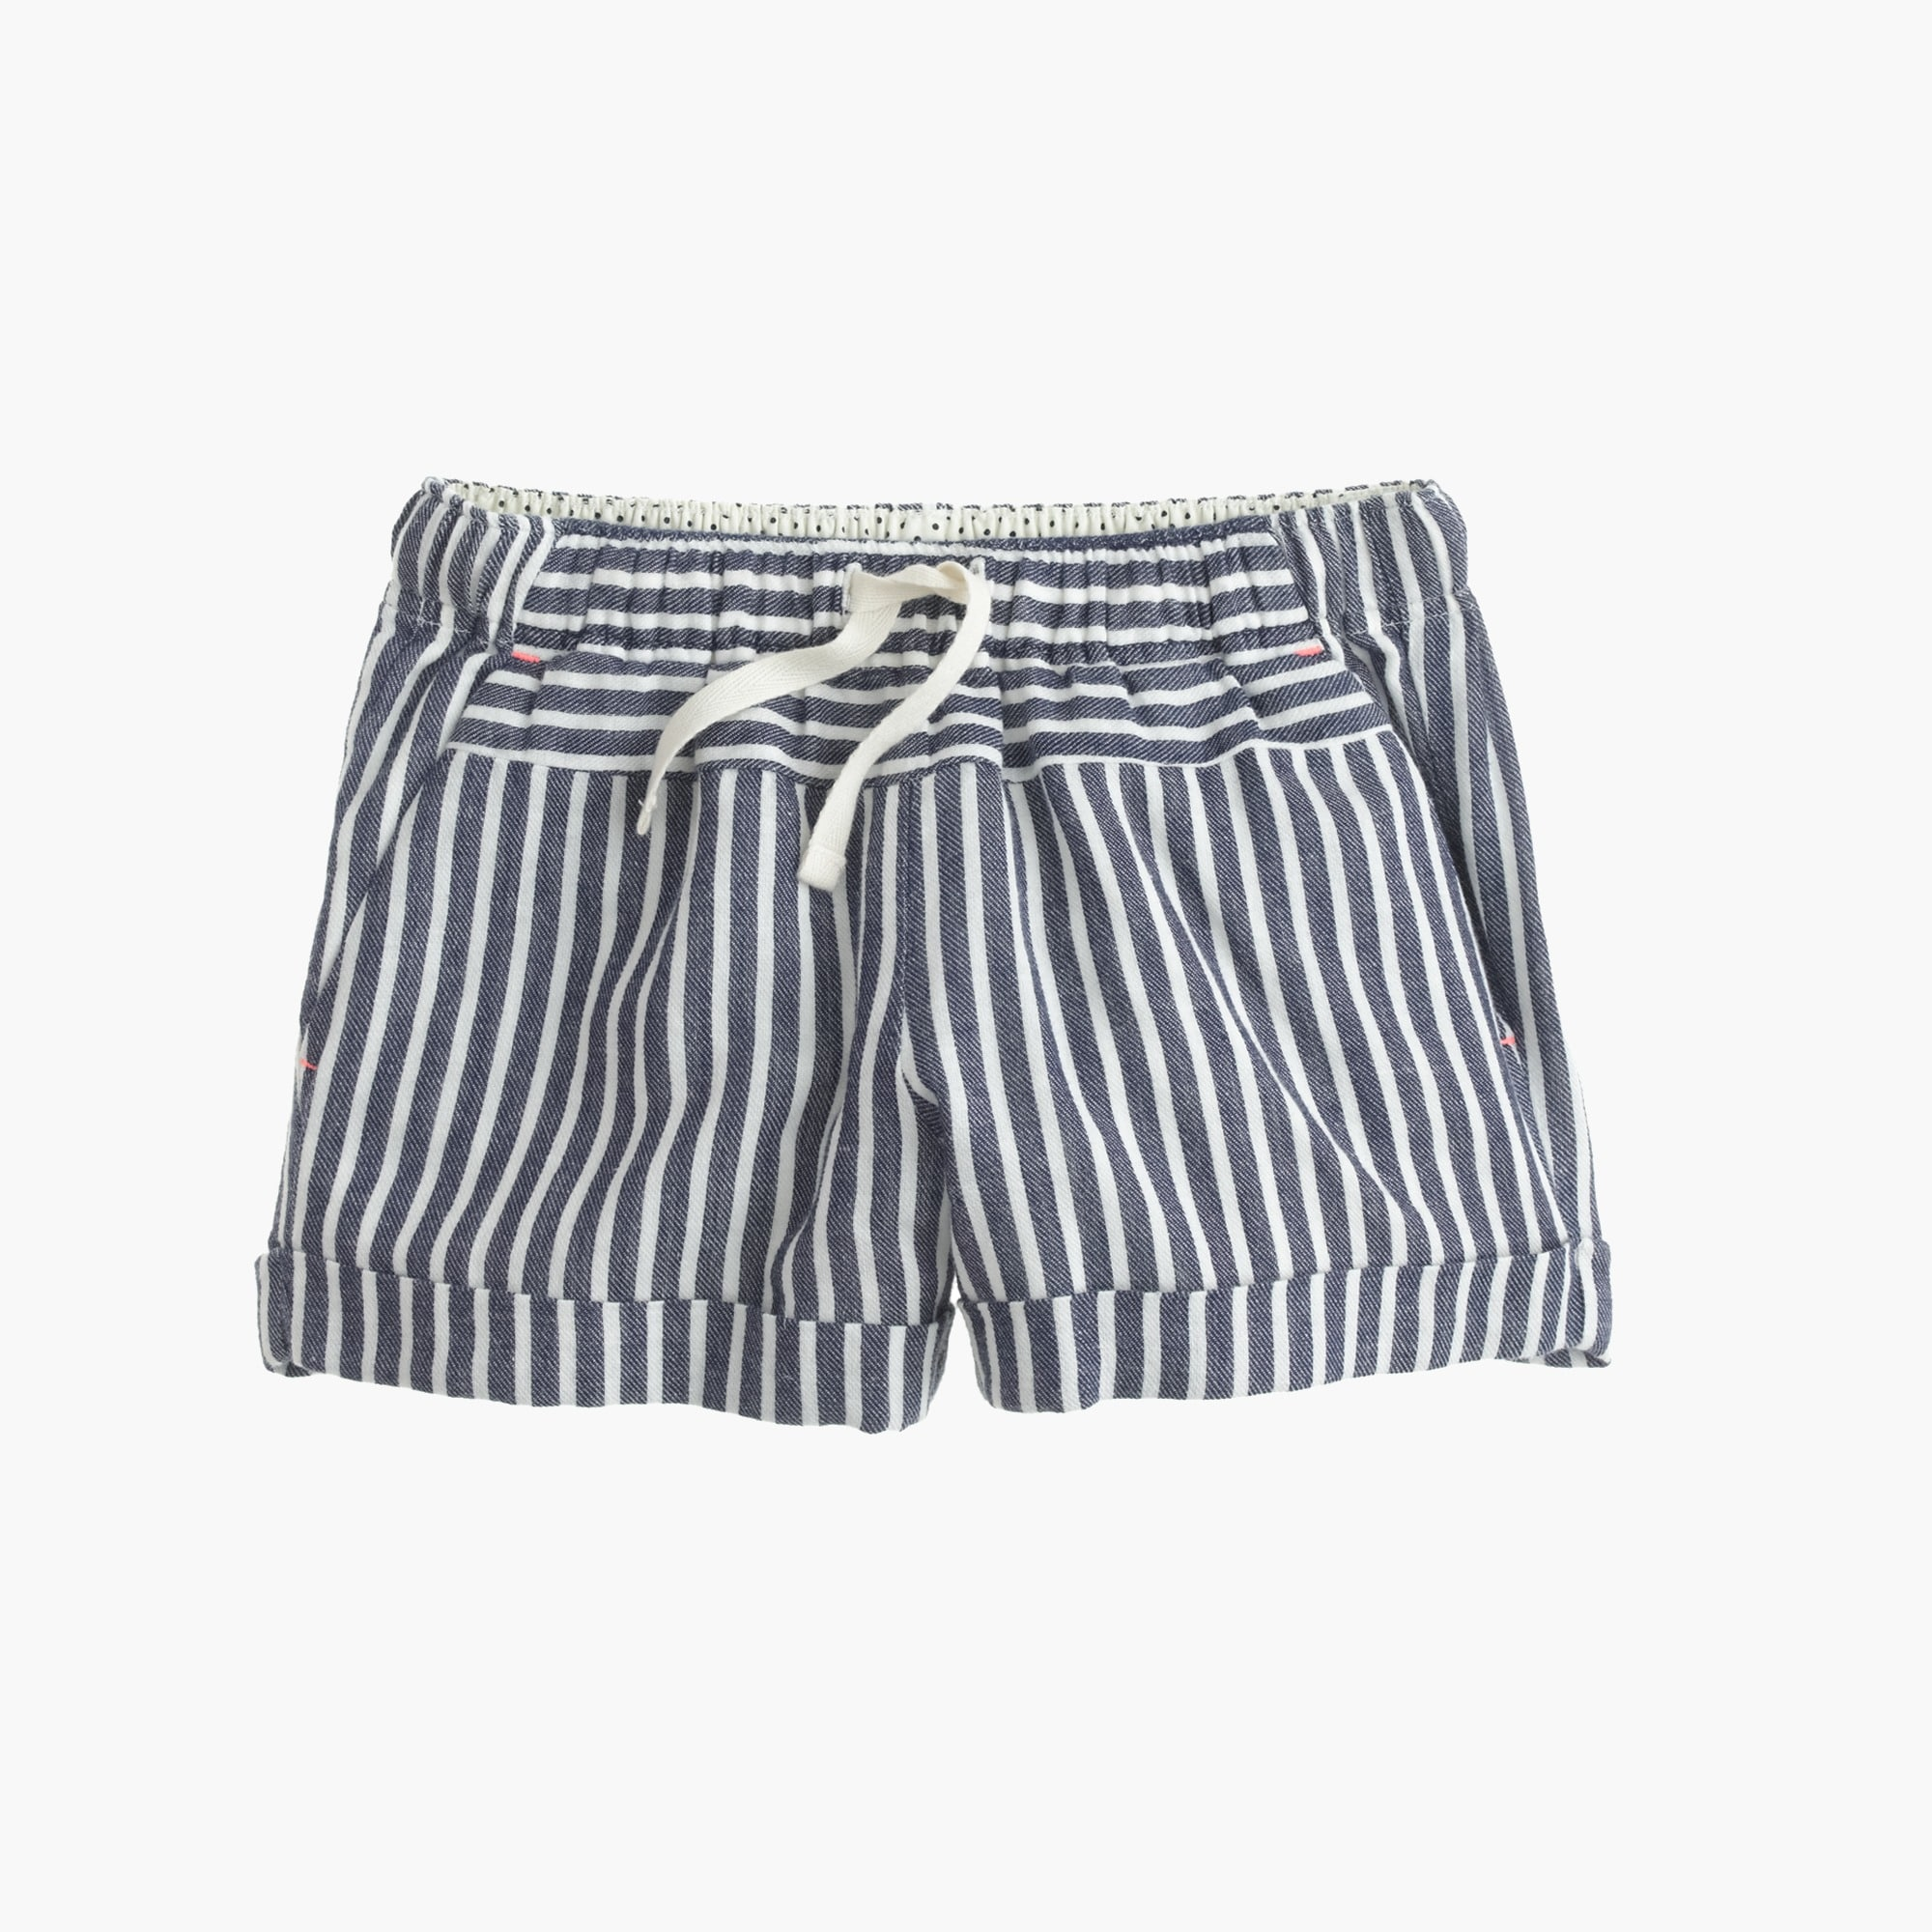 Image 1 for Girls' pull-on short in stripe